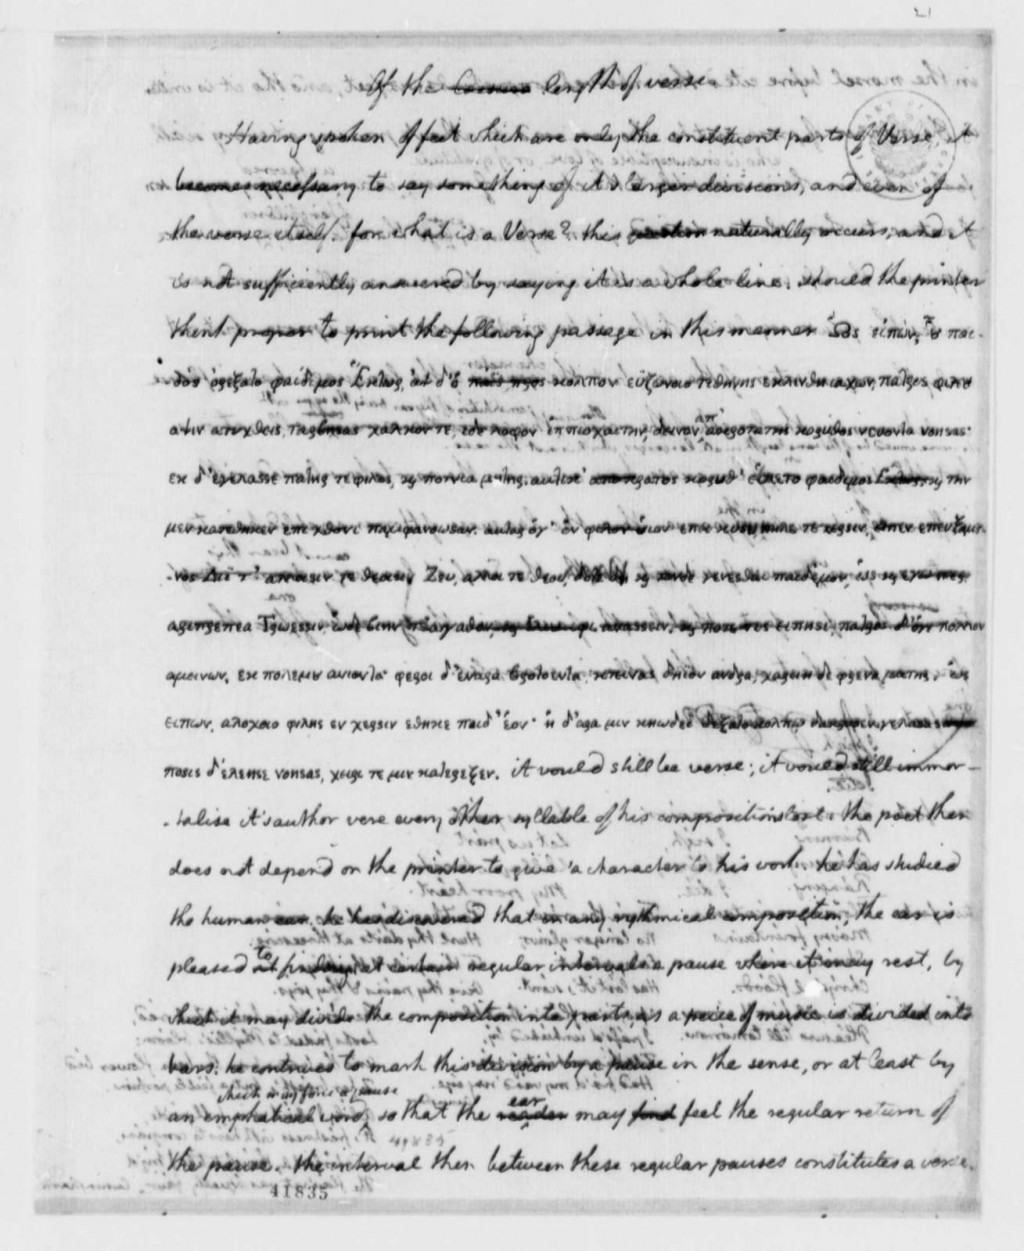 011 Essay Example Thomas Jefferson To Francois Jean Chevalier Chastellux October With Magnificent On Education Questions Outline Large